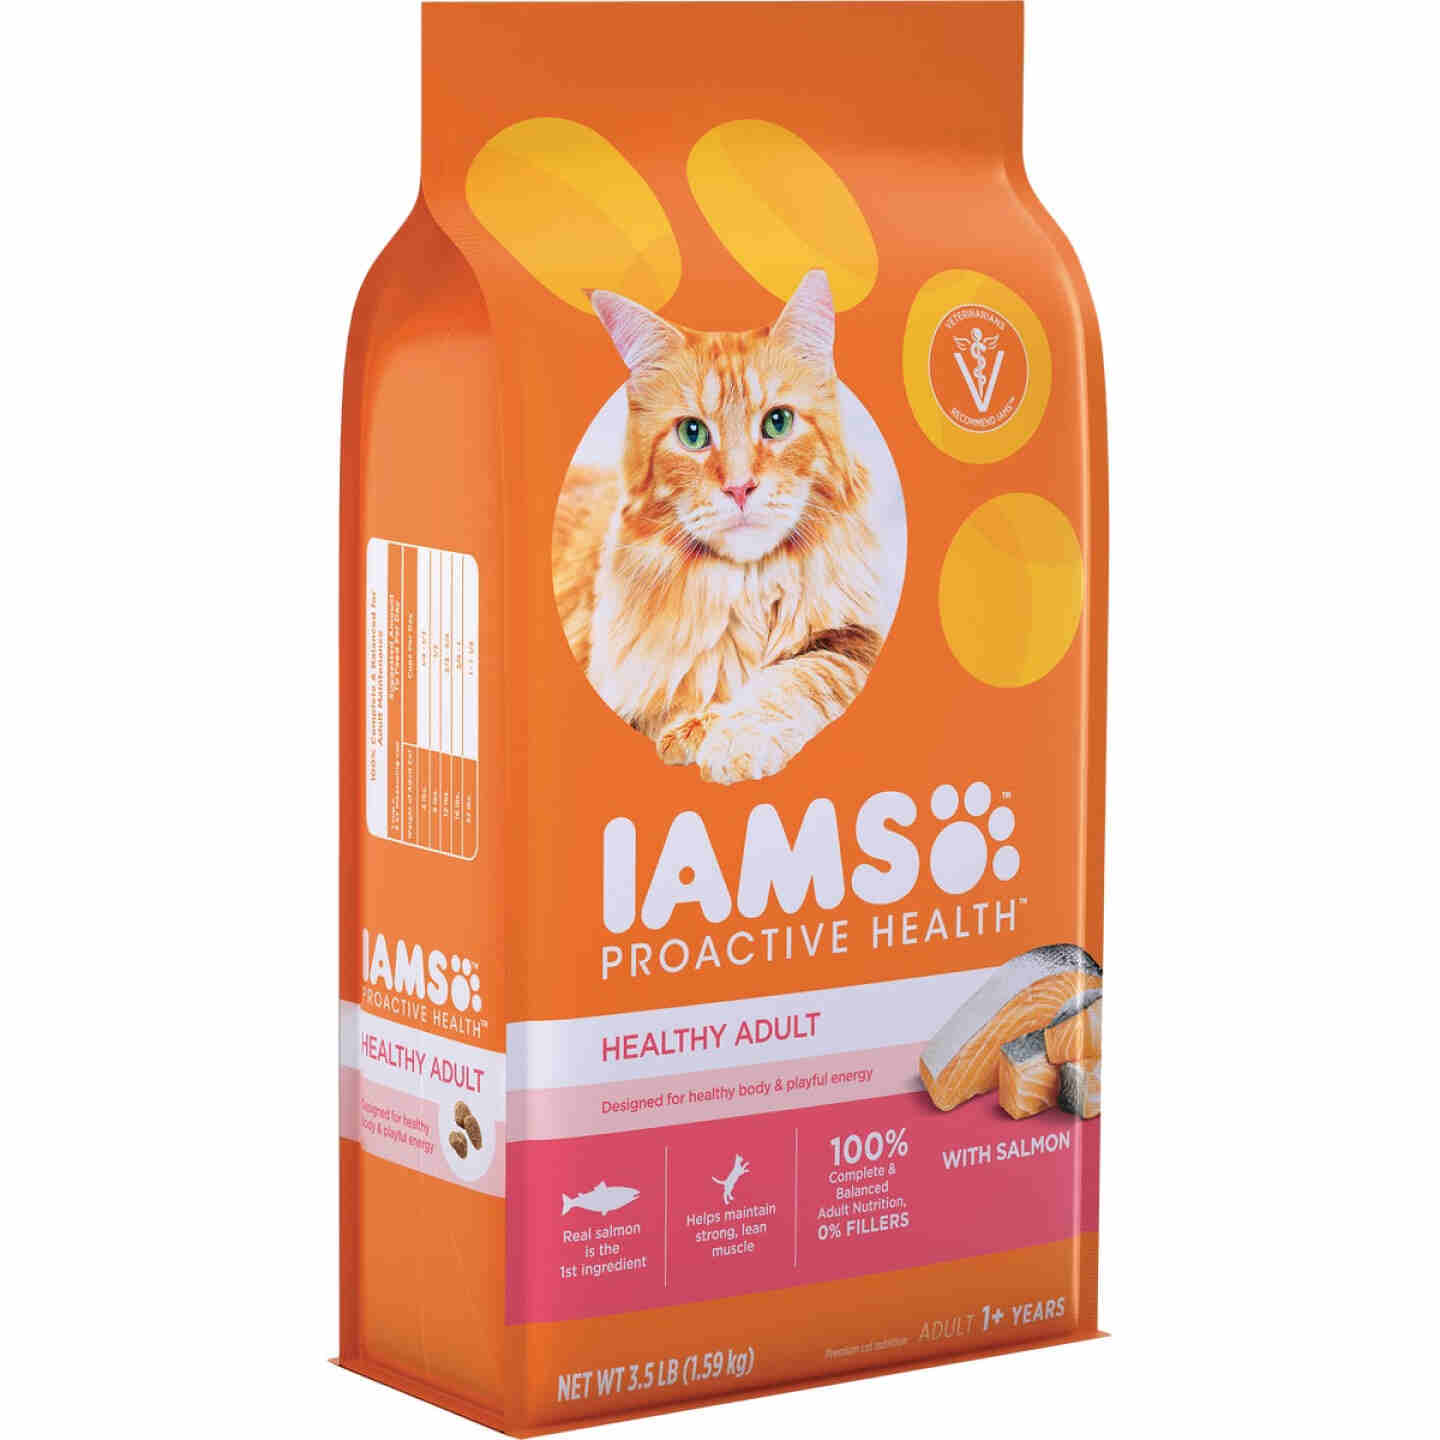 Iams Proactive Health 3.5 Lb. Salmon & Tuna Flavor Adult Dry Cat Food Image 1